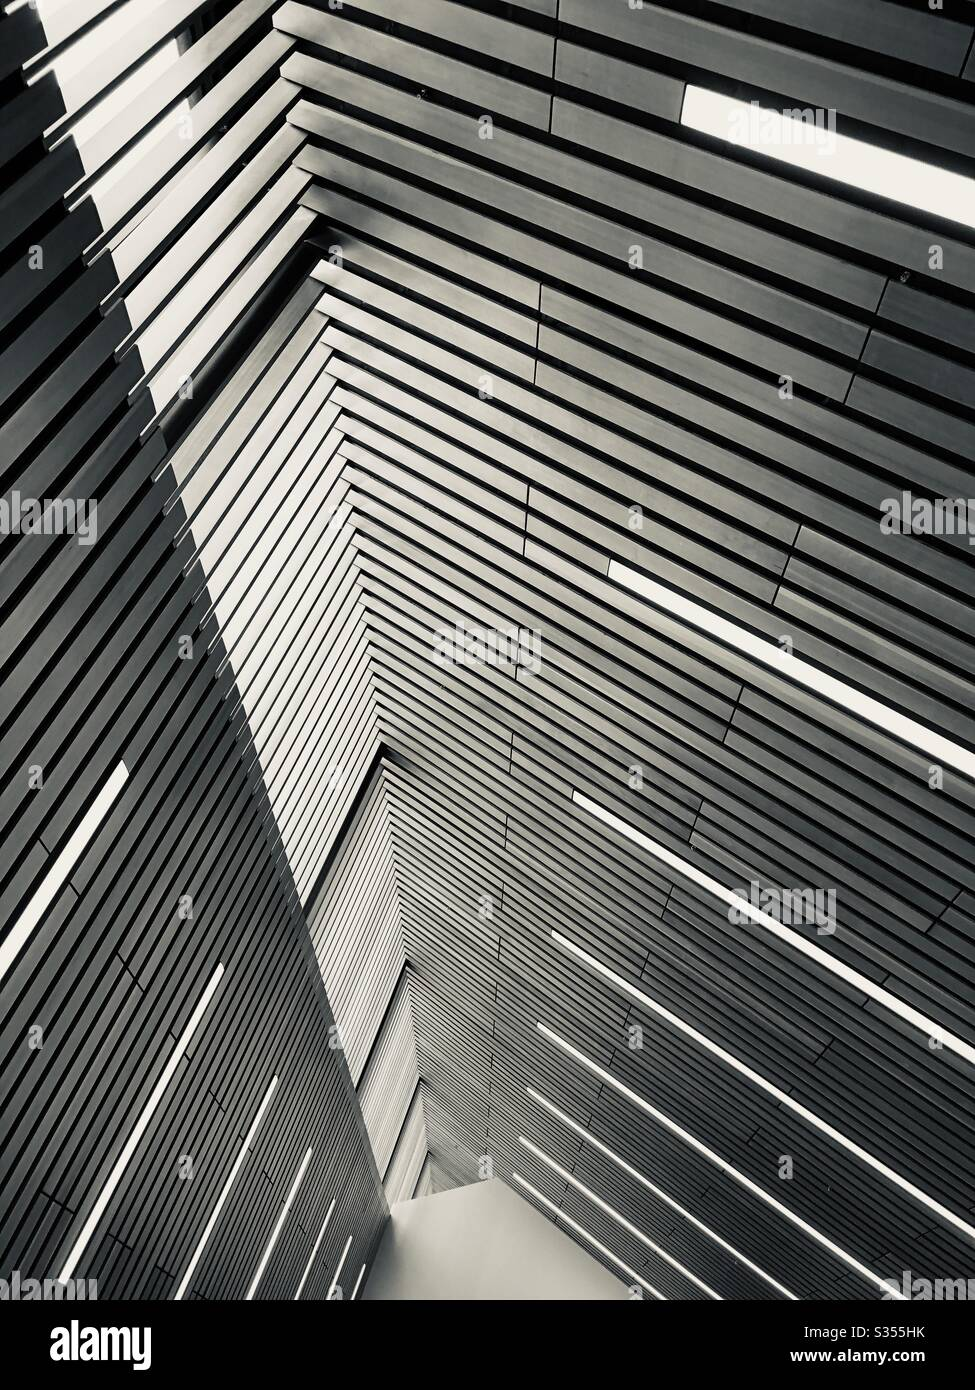 Modern Architectural Ceiling Roof And Skylights Stock Photo Alamy